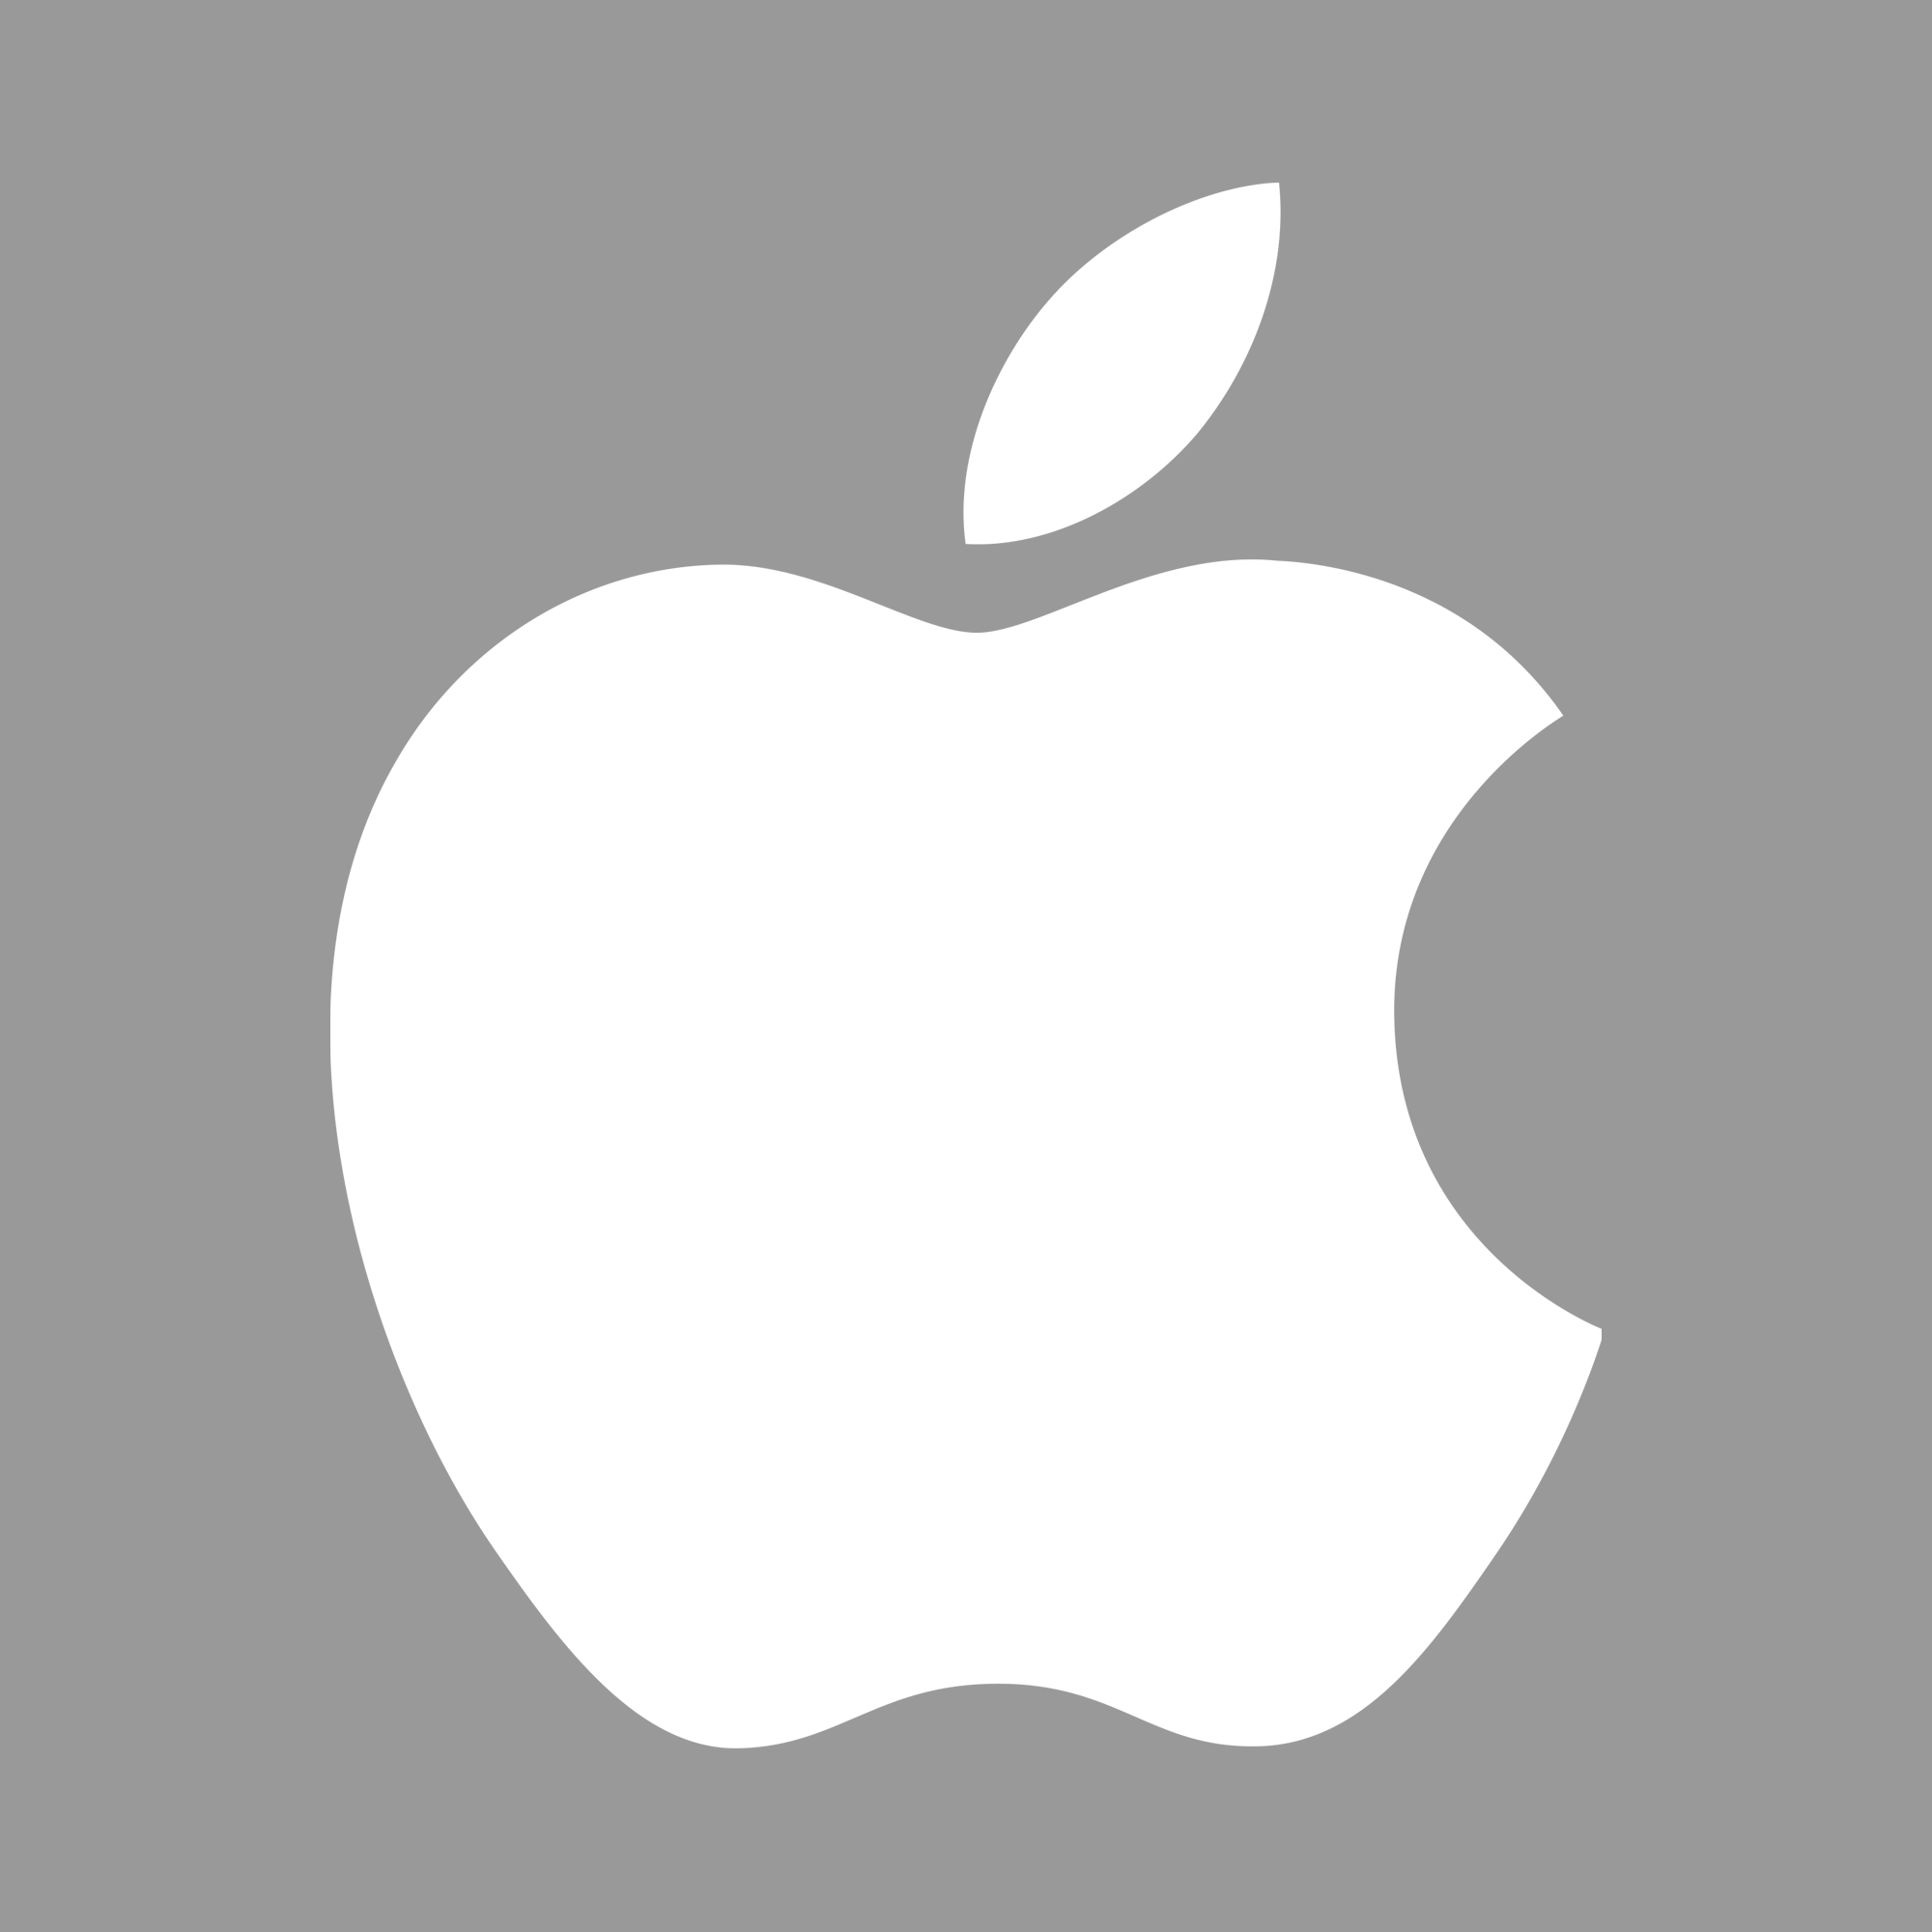 how to cut out apple logo